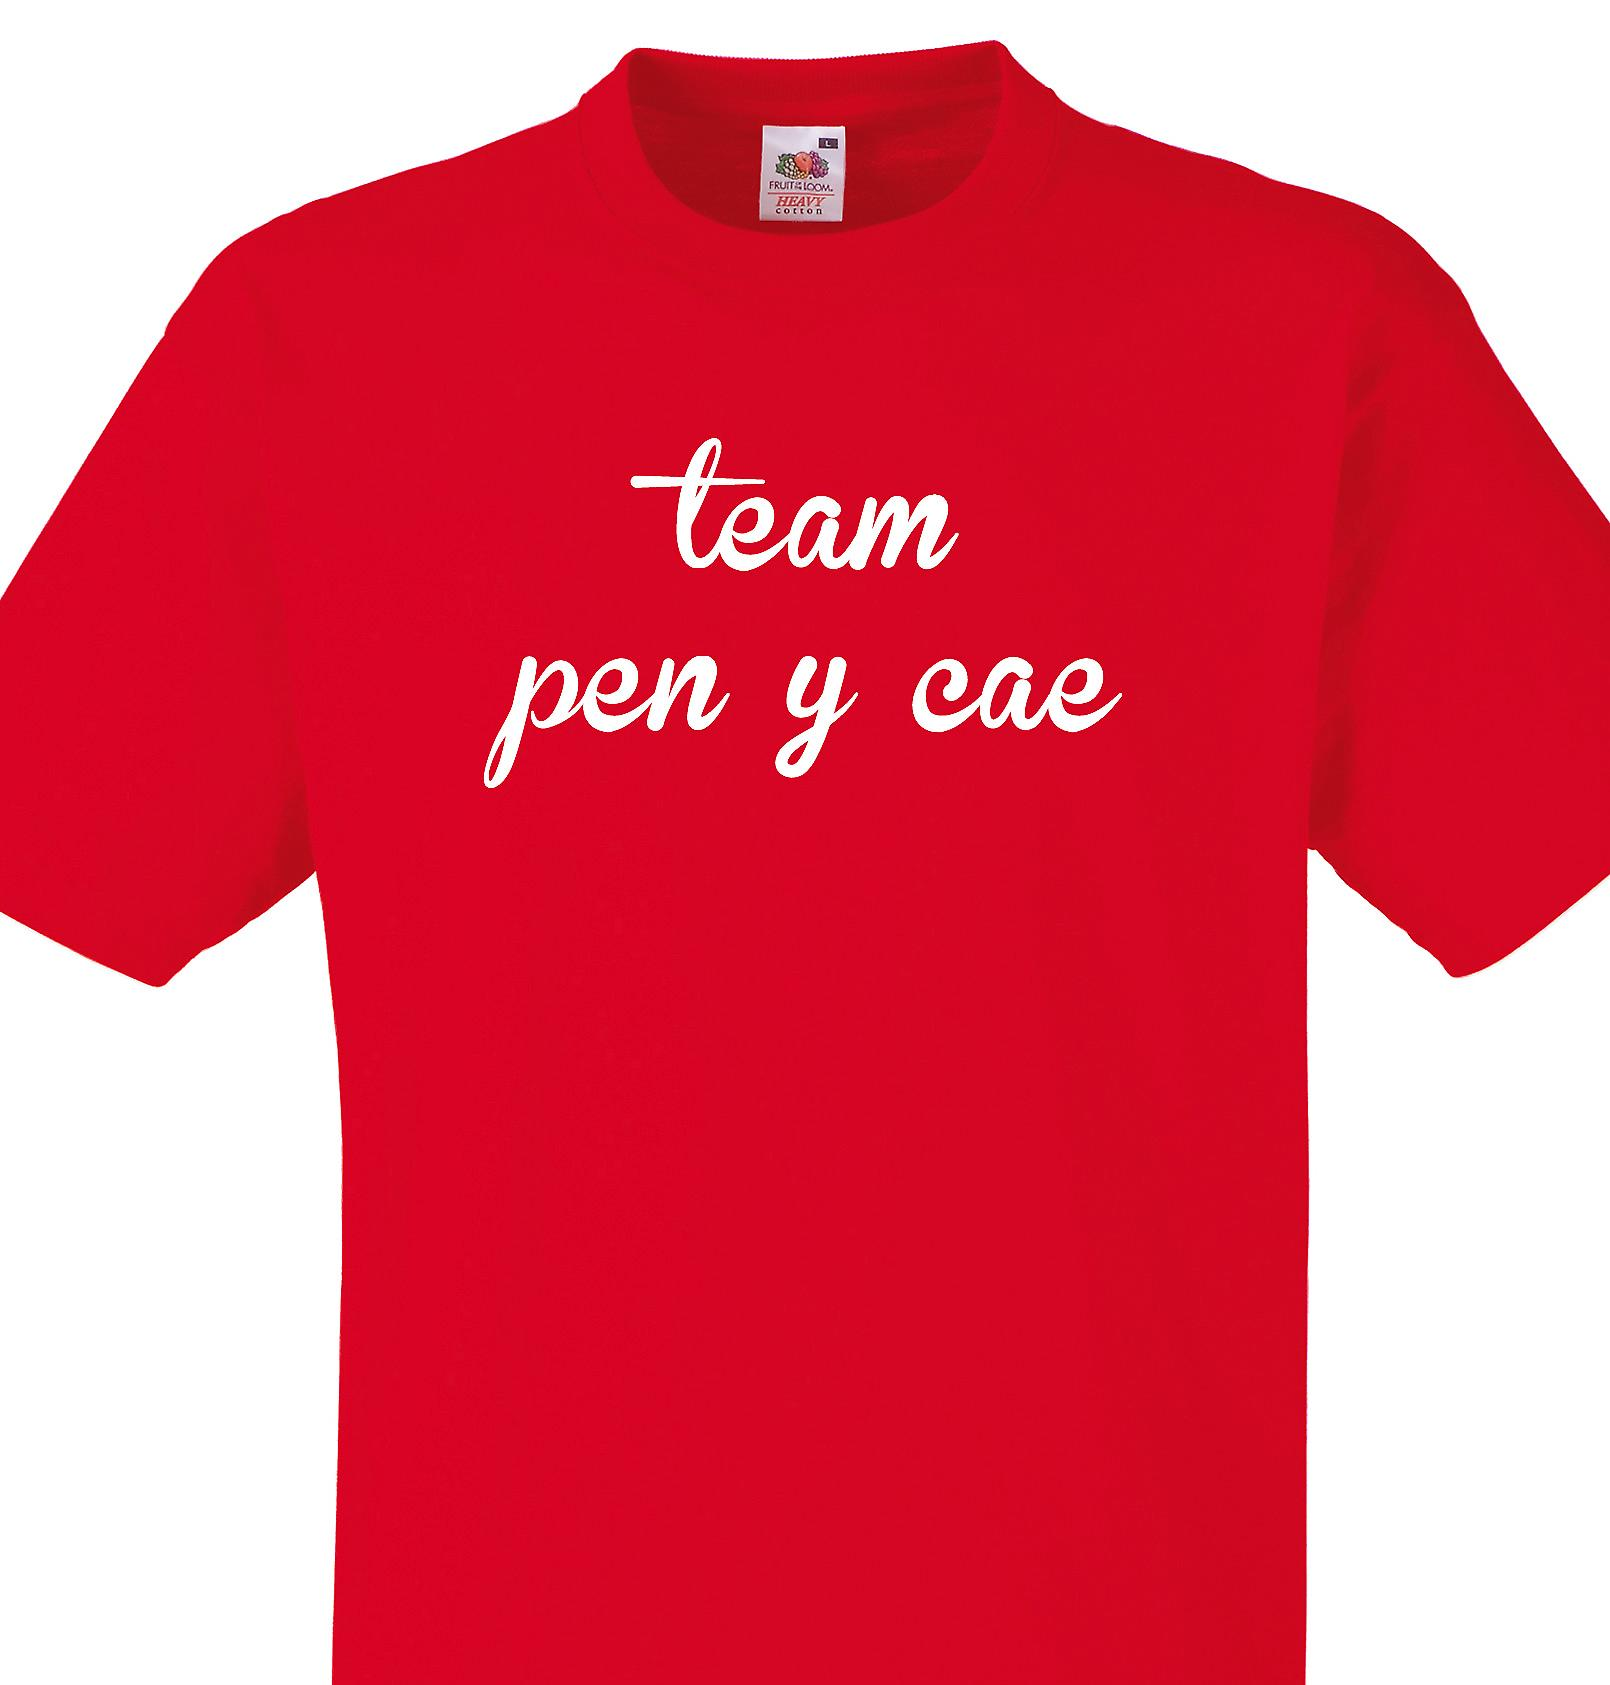 Team Pen y cae Red T shirt